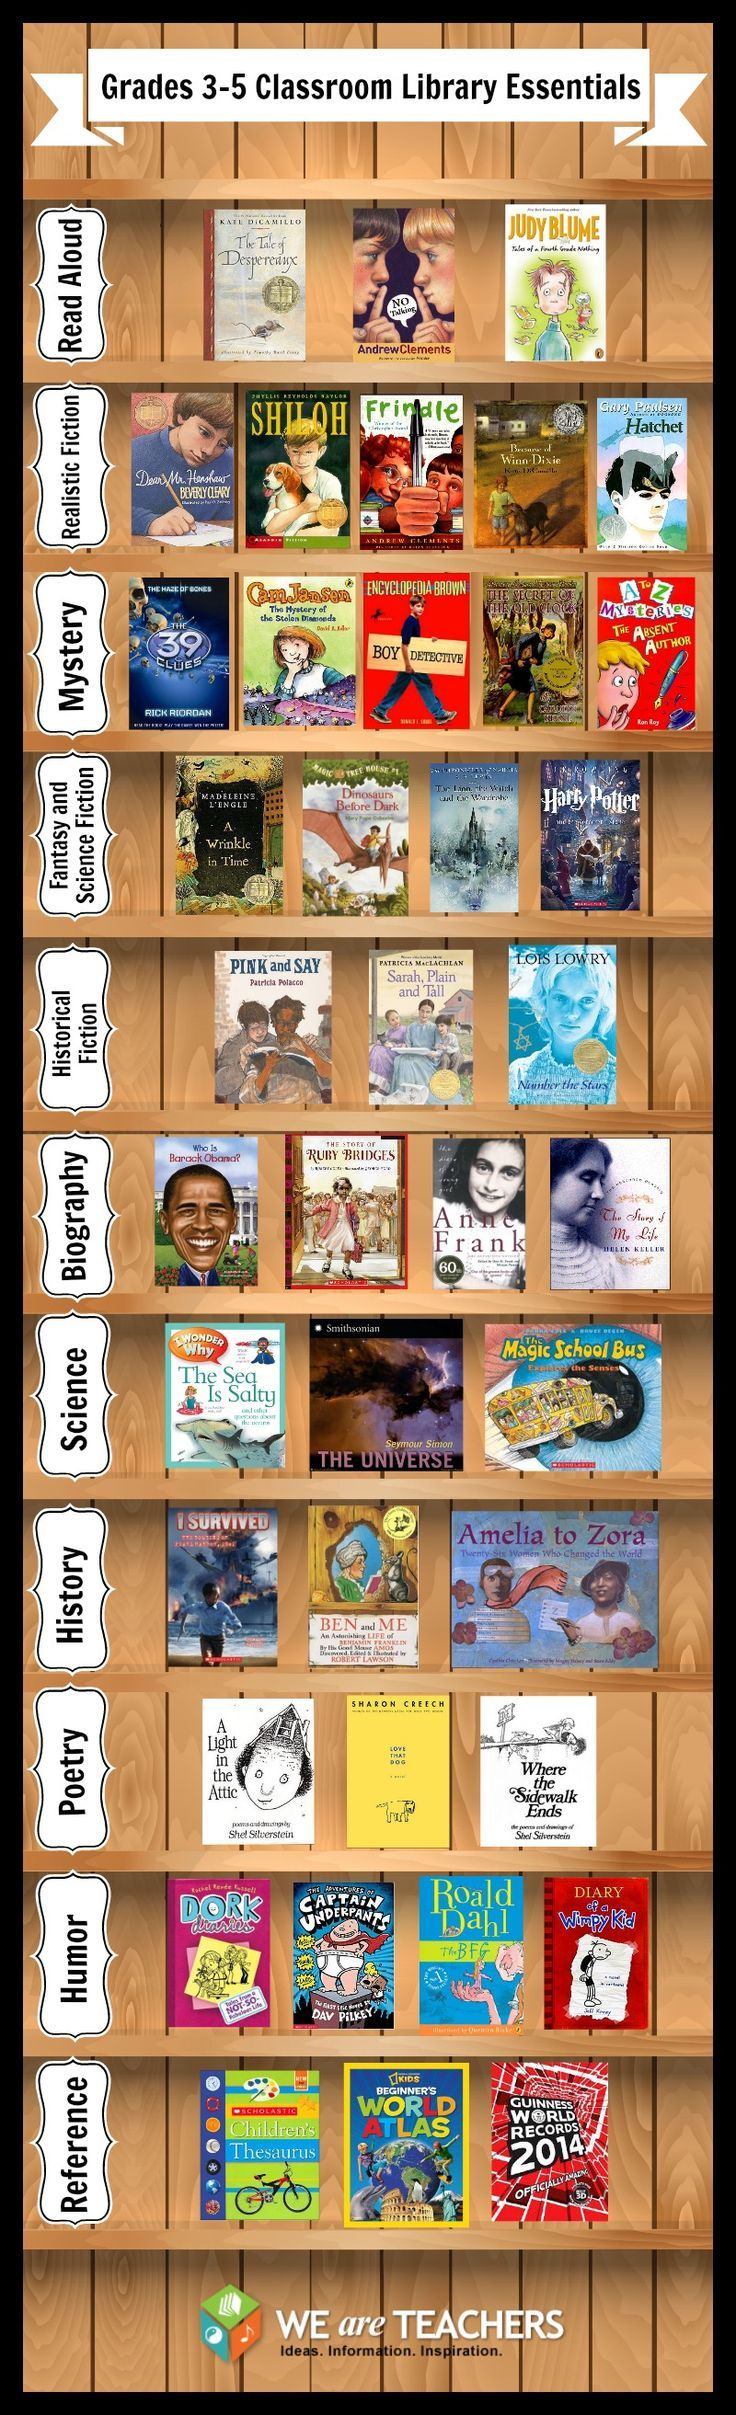 Grade 3-5 Essential Books